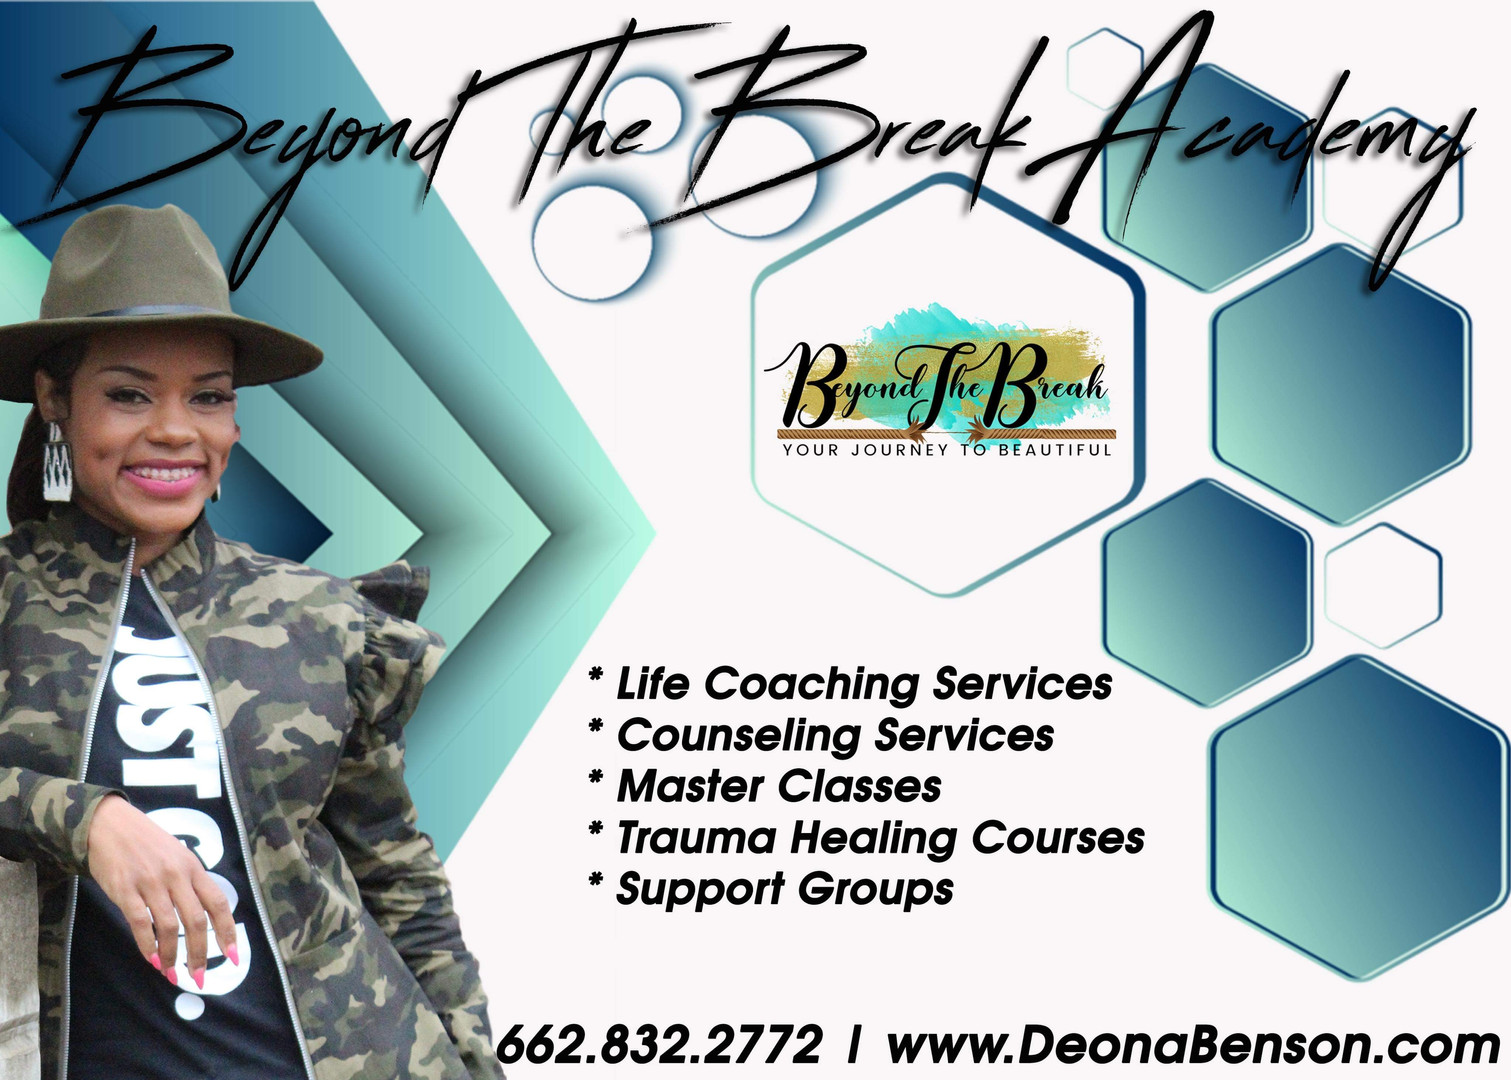 Contact us today to book services